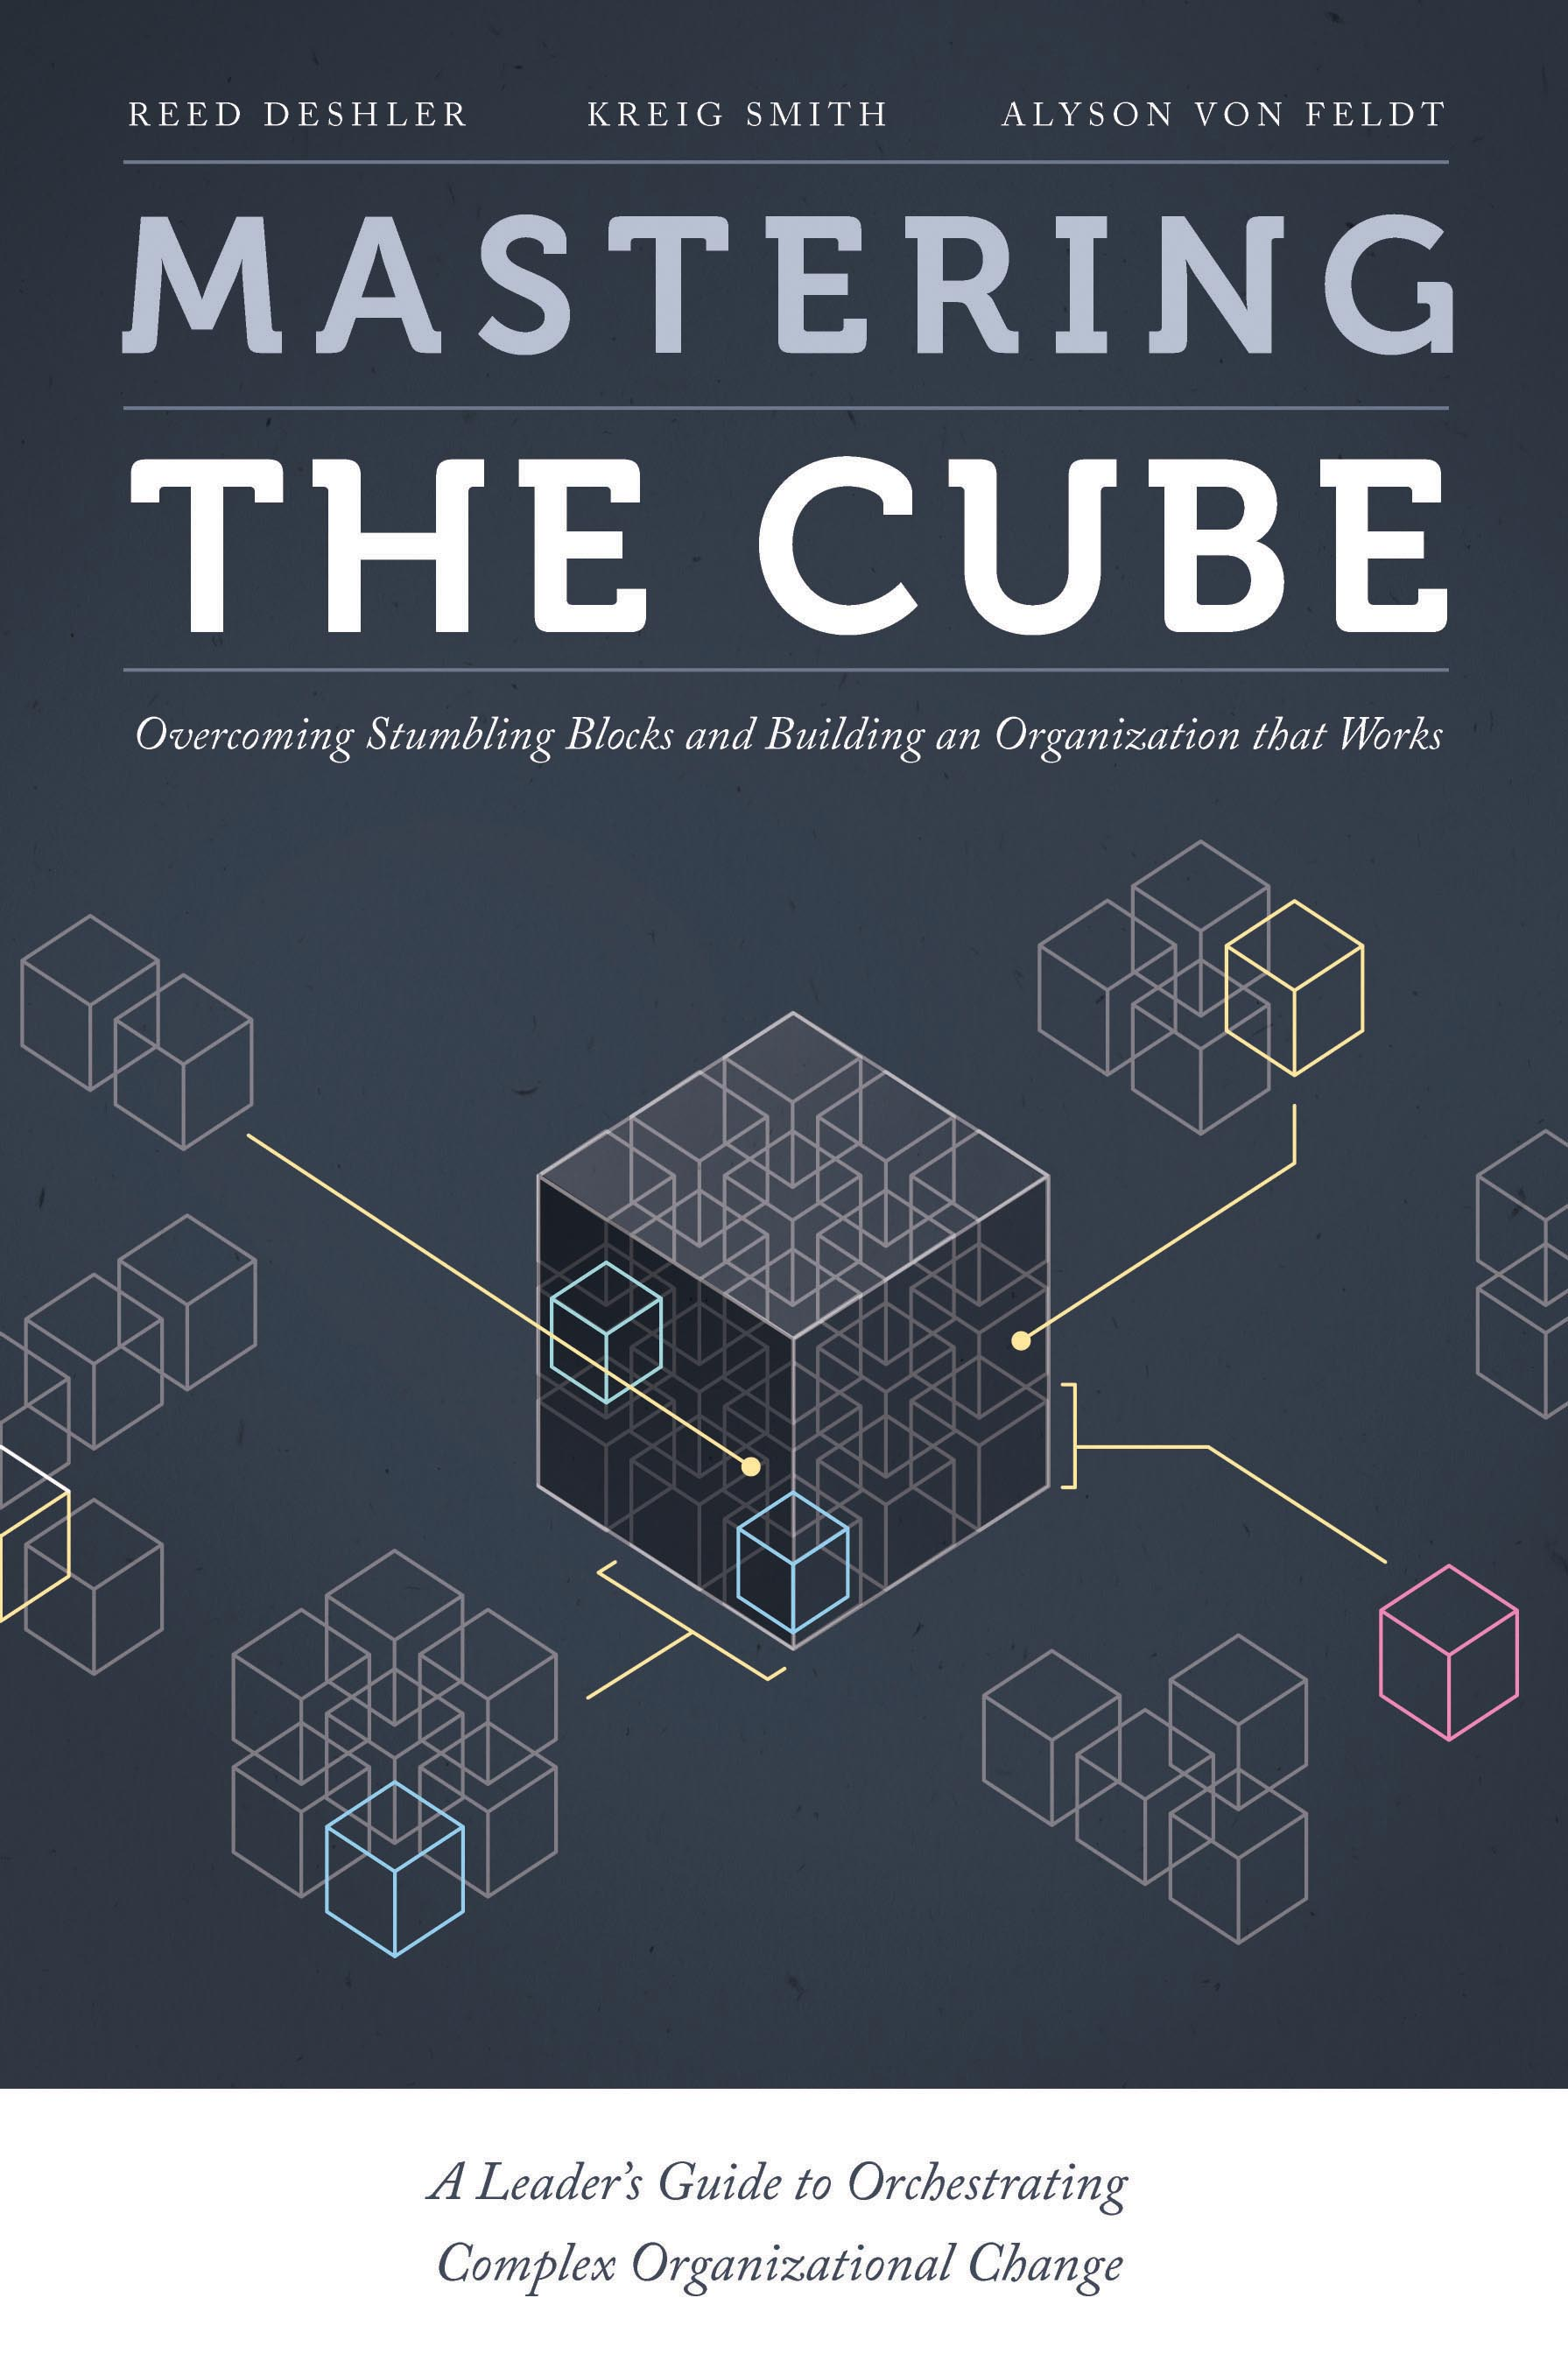 Book Discussion: Mastering the Cube